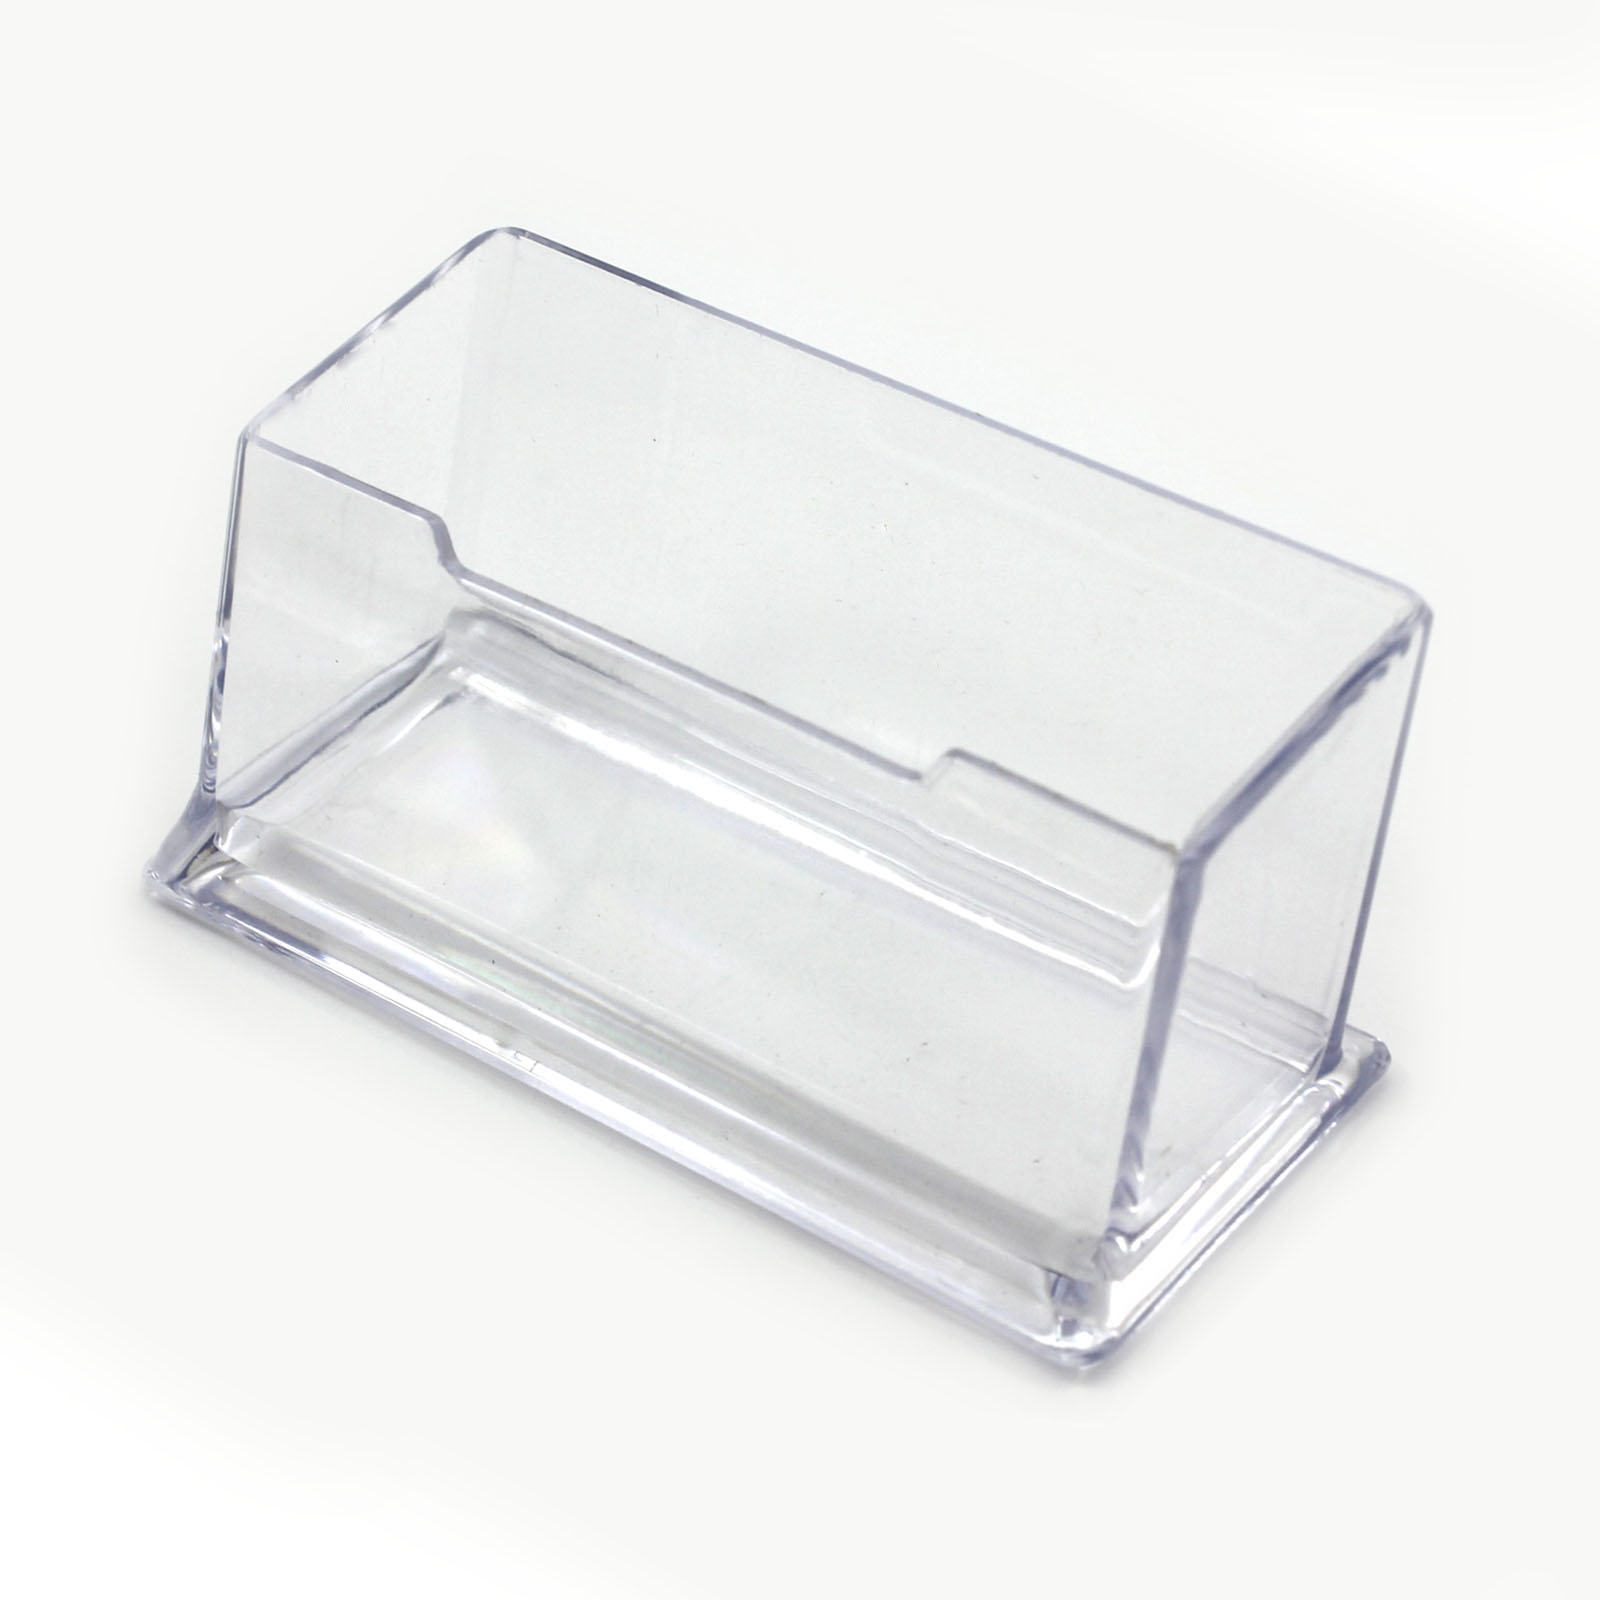 online shop practical transparent cuboid acrylic desktop business